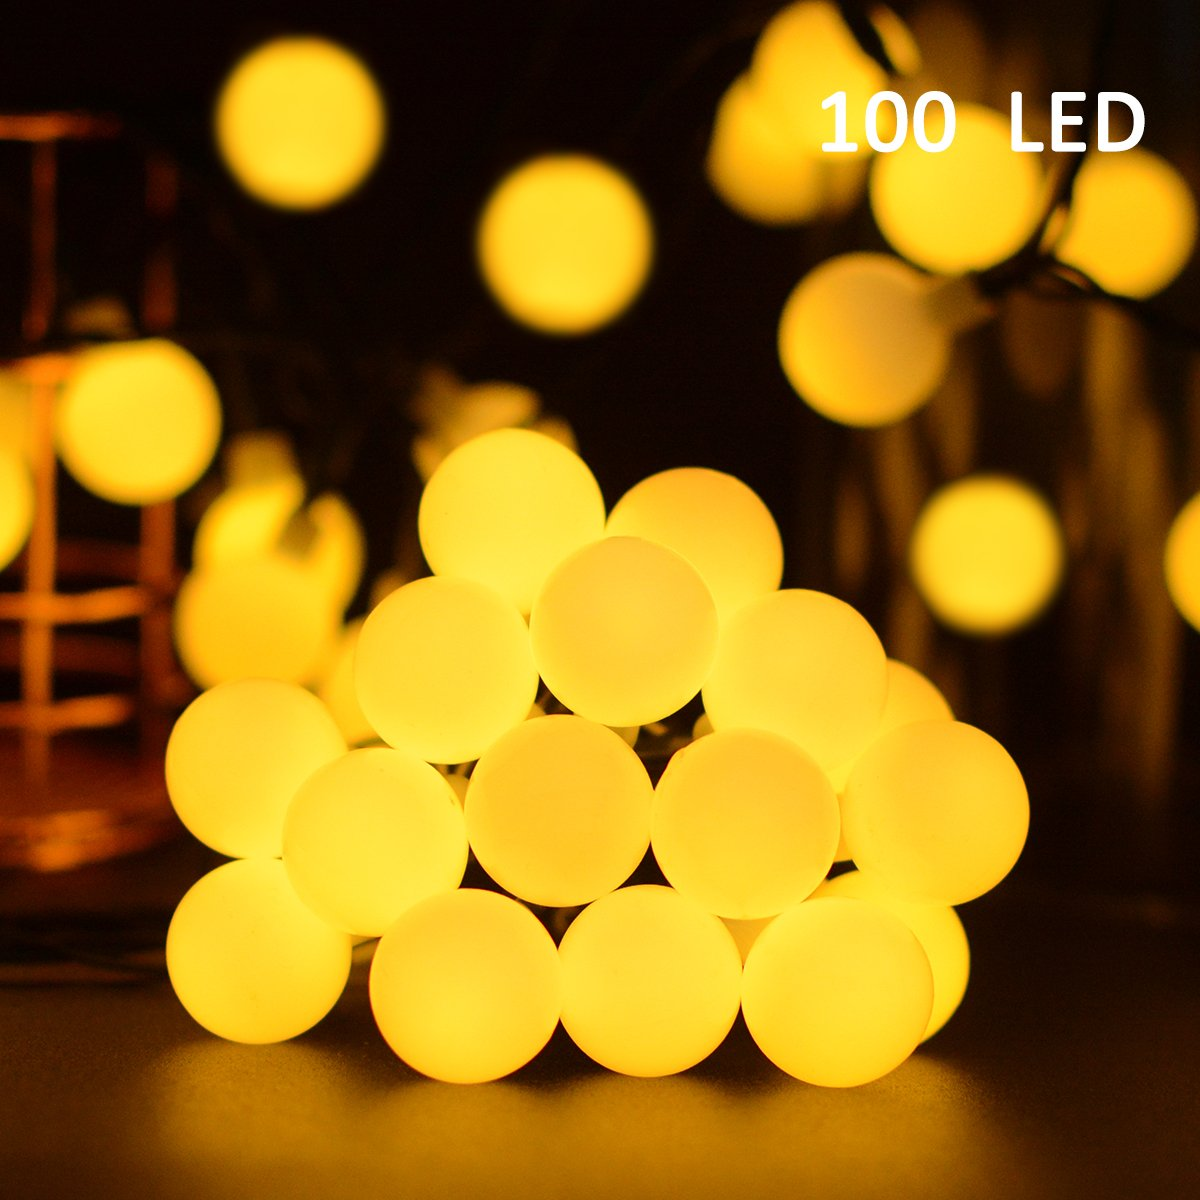 VMANOO Globe Battery Operated Timer String Lights 100 LED Ball Fairy Christmas Lighting Decor for Outdoor, Indoor, Garden, Patio, Bedroom Wedding Decorations (Warm White)